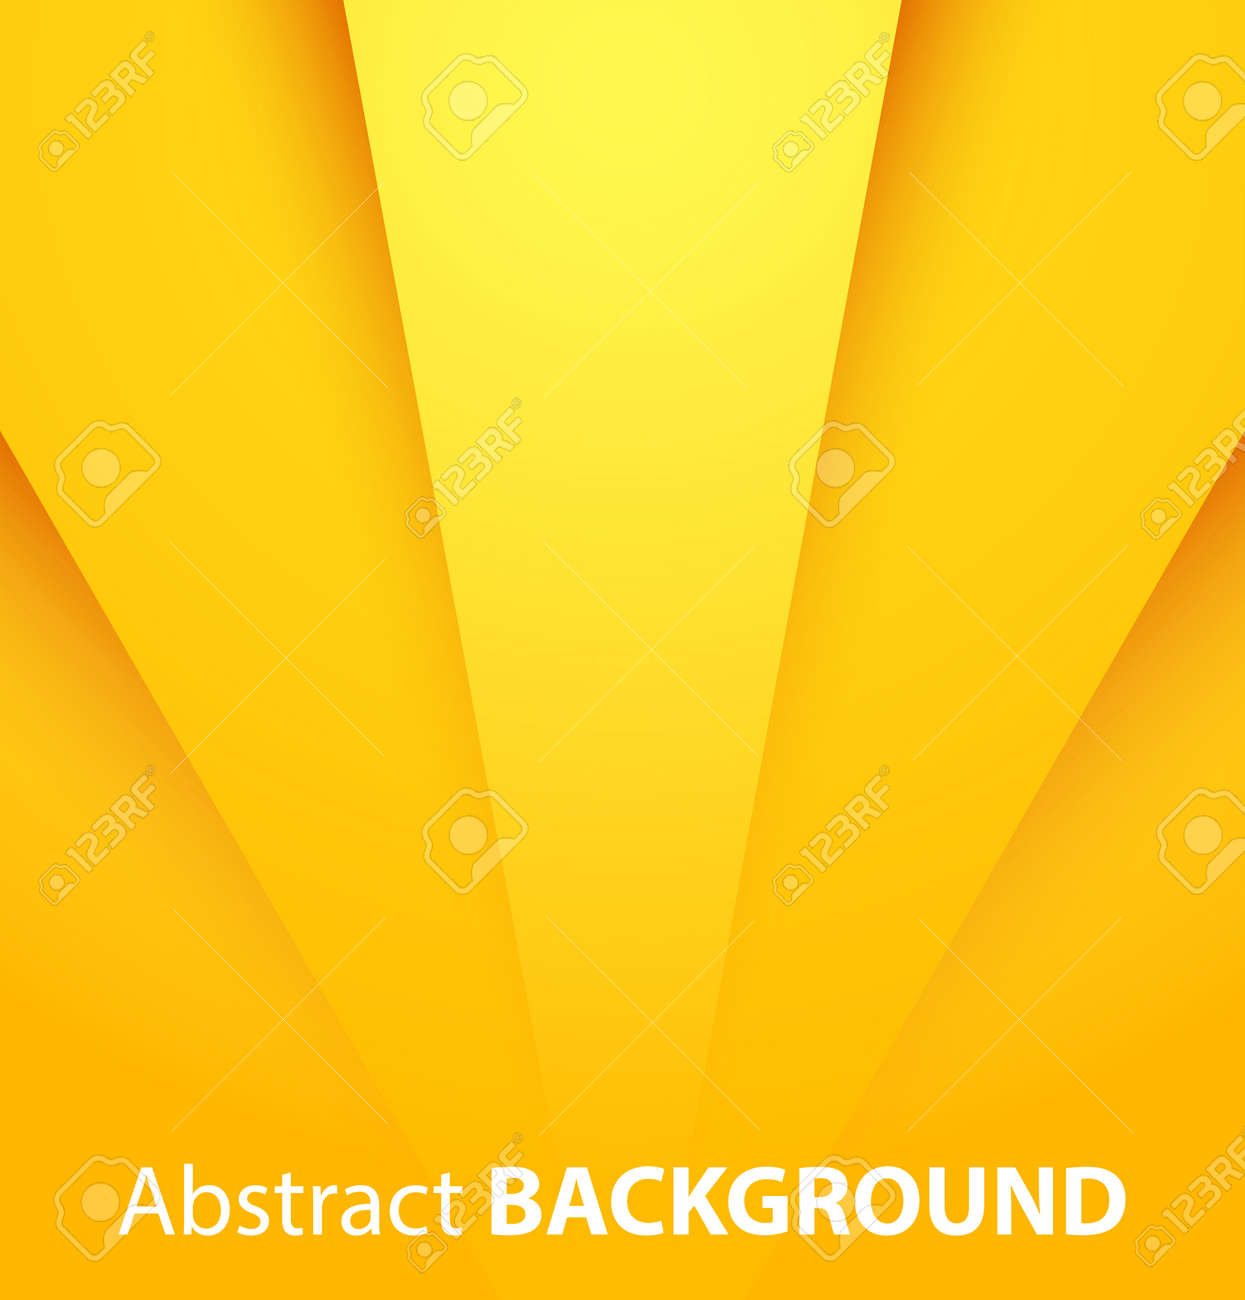 Abstract yellow paper background with shadow. Vector illustration - 24231384